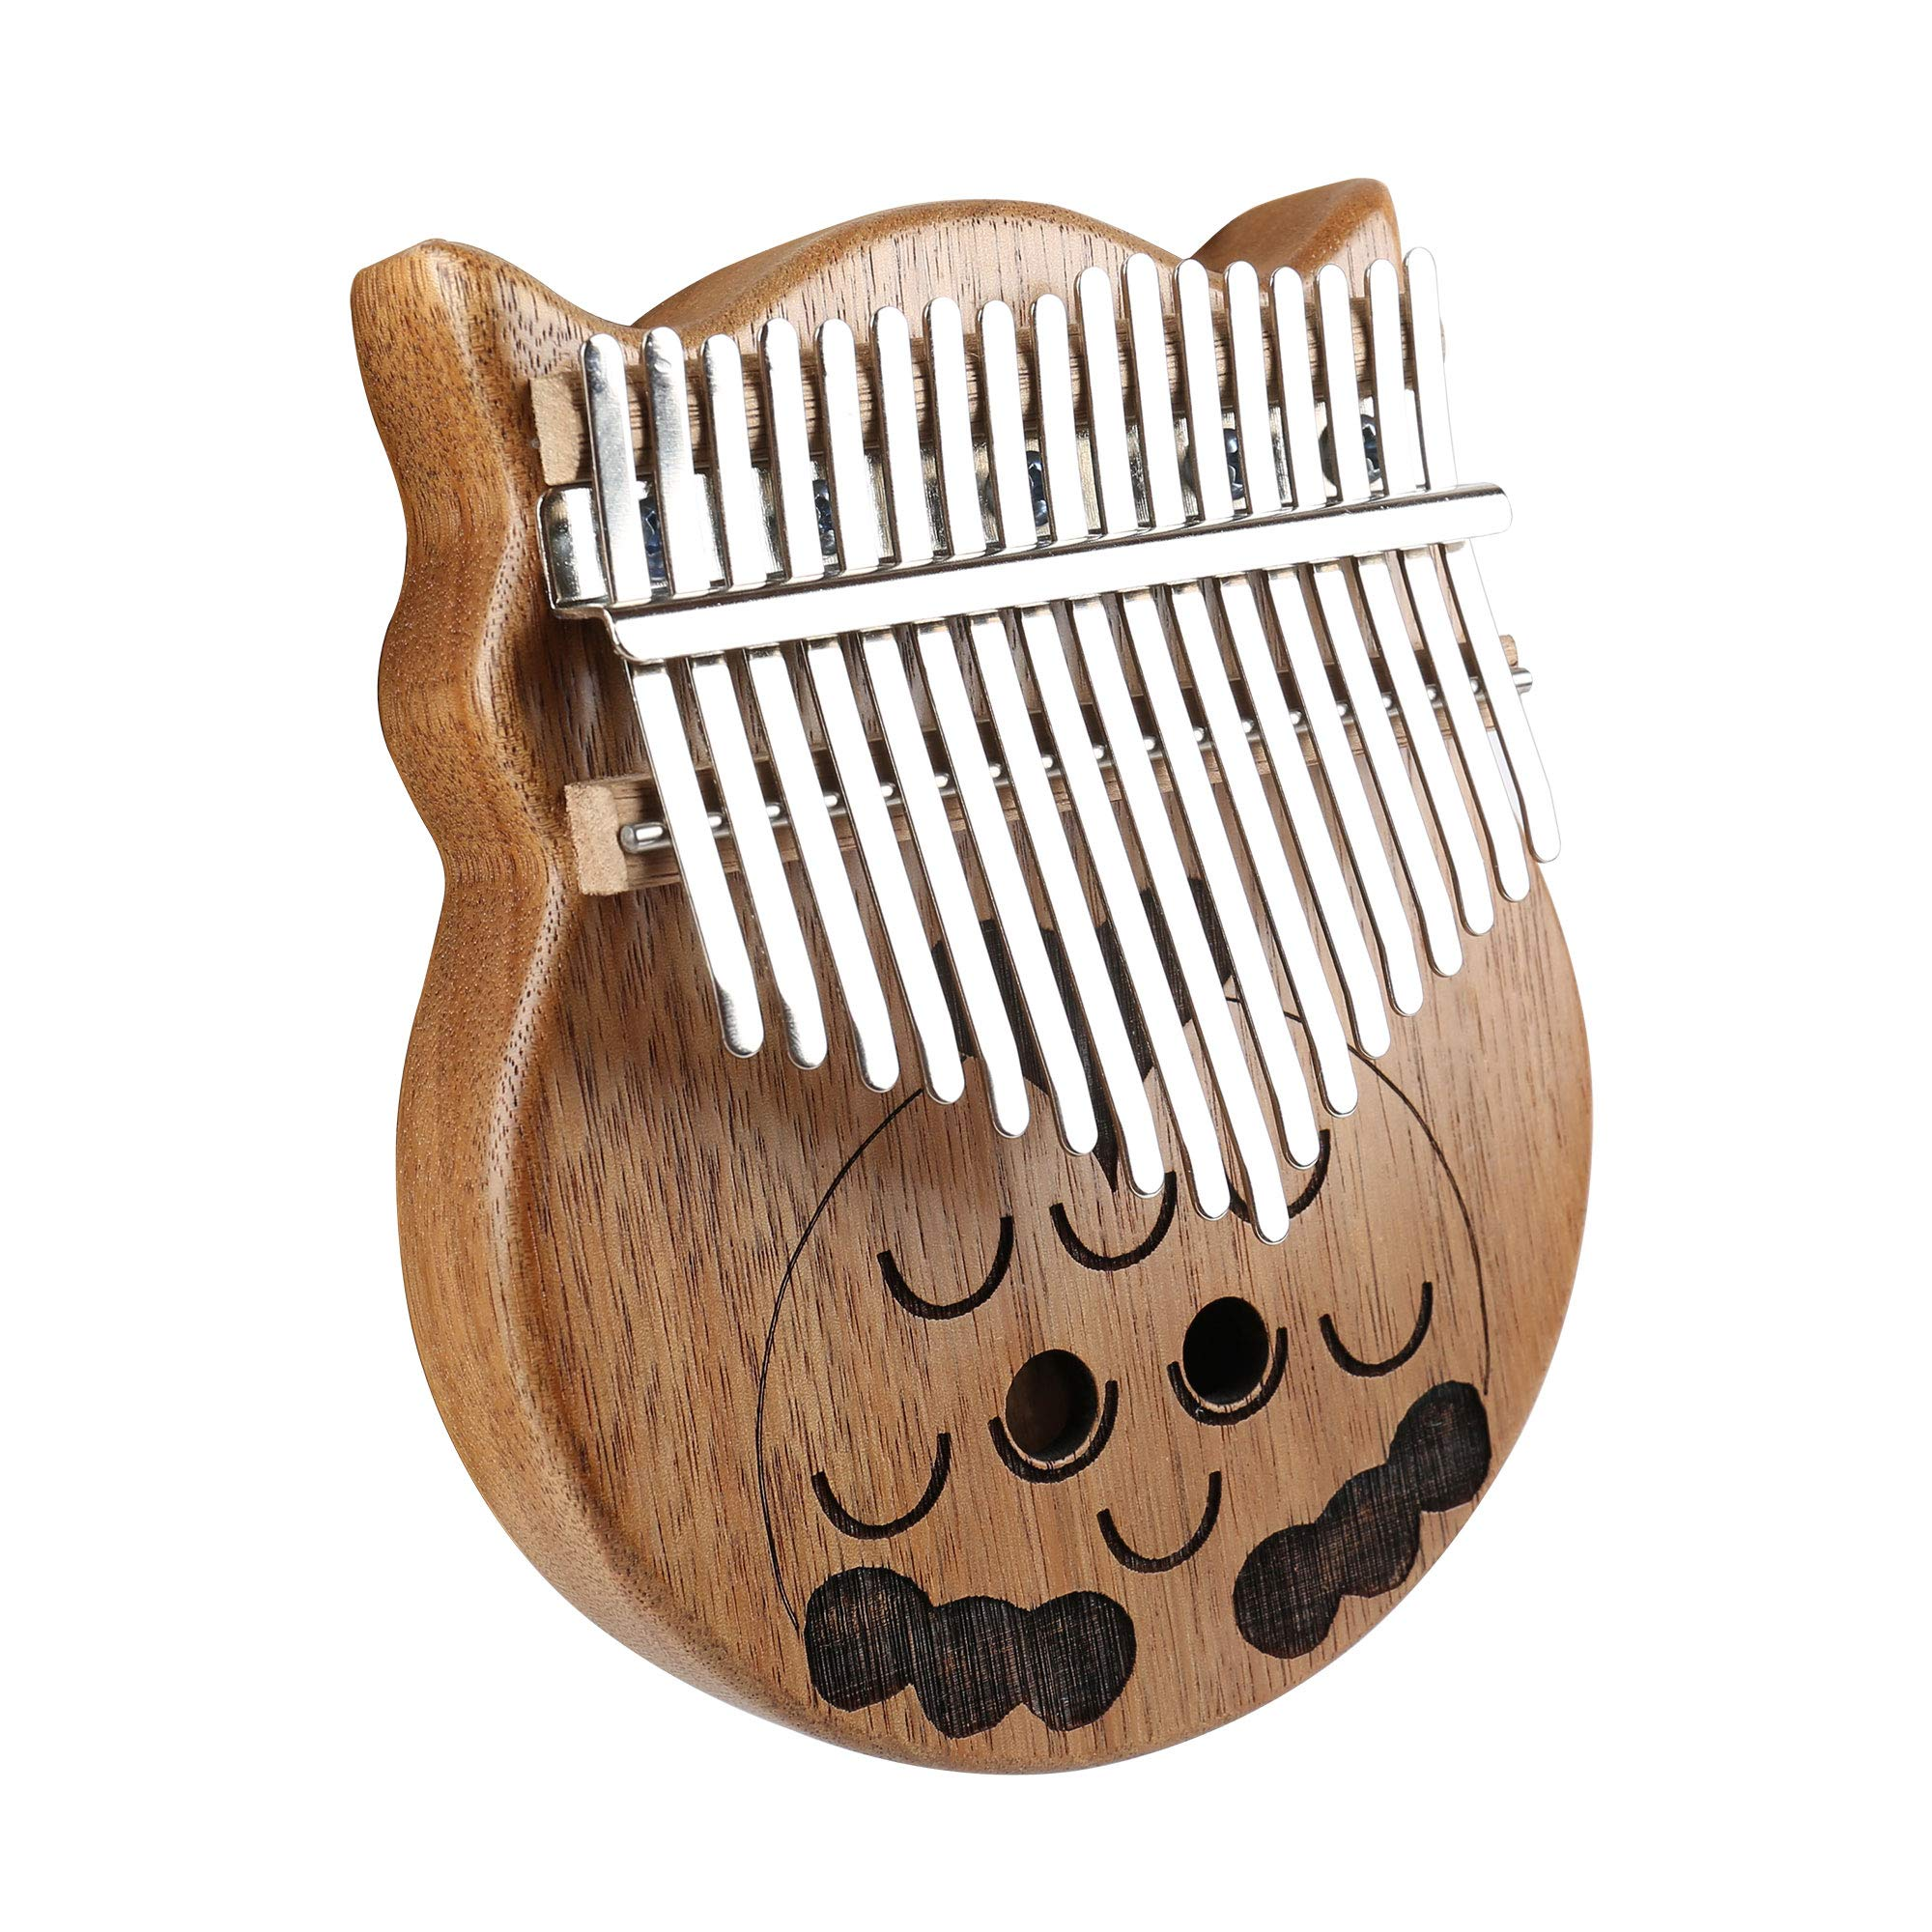 longdafeiUS Kalimba, Owl ThumbPianowith 17 Key Finger Piano Mbira Solid Walnut Wood Thumb Piano Finger Percussion Musical Gift by longdafeiUS (Image #1)